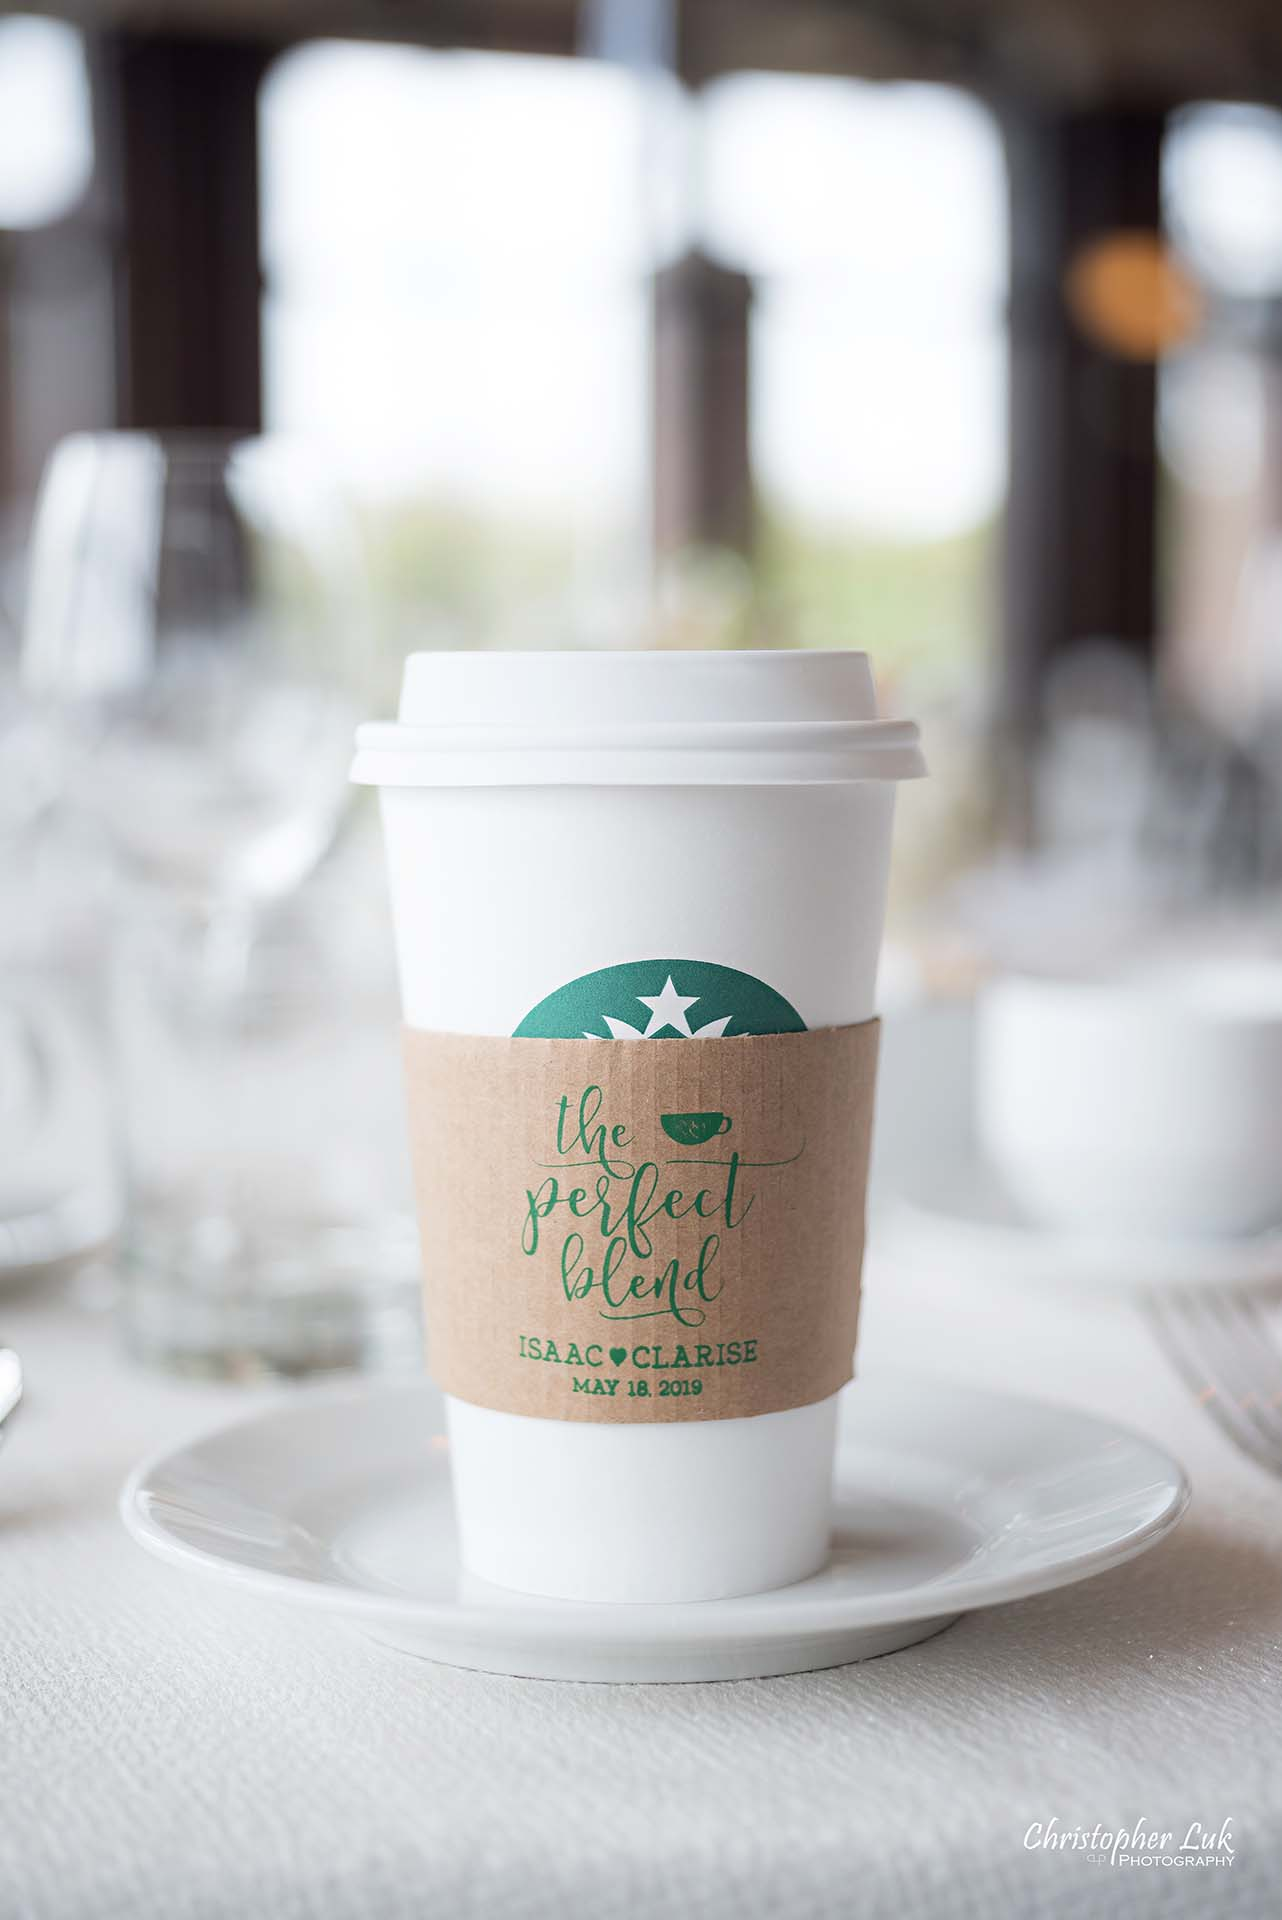 Christopher Luk Toronto Wedding Photographer Eagles Nest Golf Club Course Clubhouse Great Hall Dinner Reception Head Cake Table Details Starbucks Coffee Cup Cardboard Sleeve Protector Java Jacket Custom The Perfect Blend